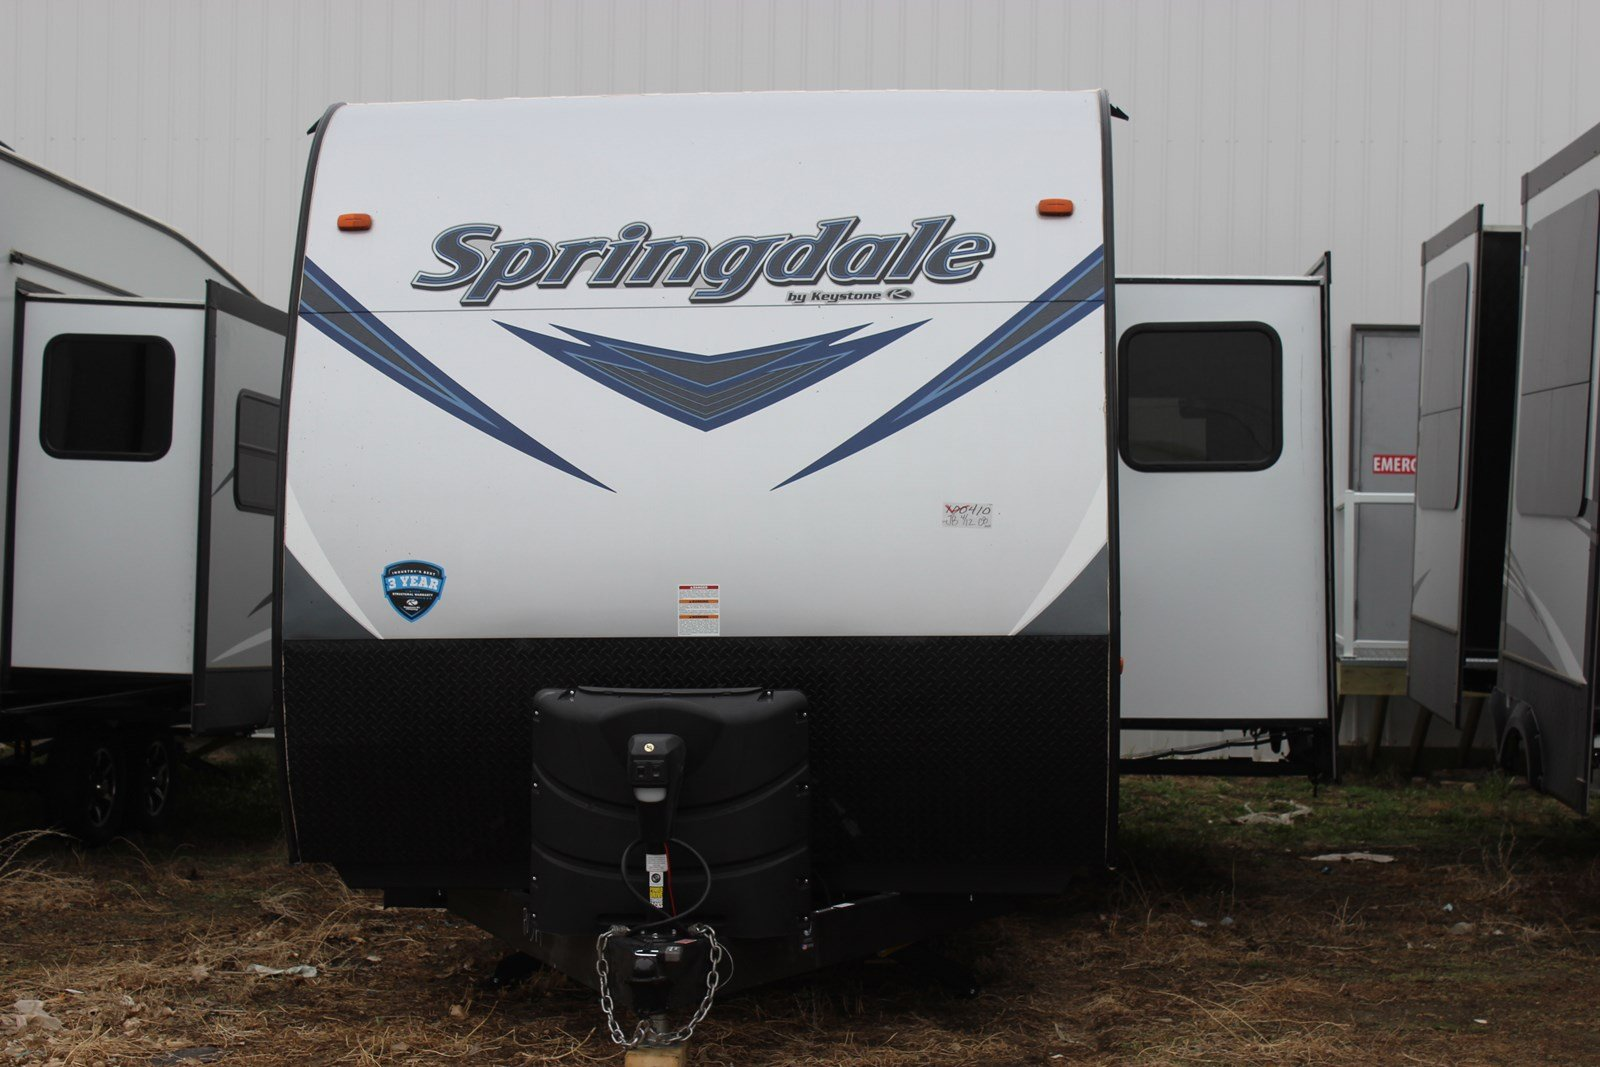 New 2019 Springdale 274rb Travel Trailer In Swift Current Rv514 Knight Diagram 7 Wire